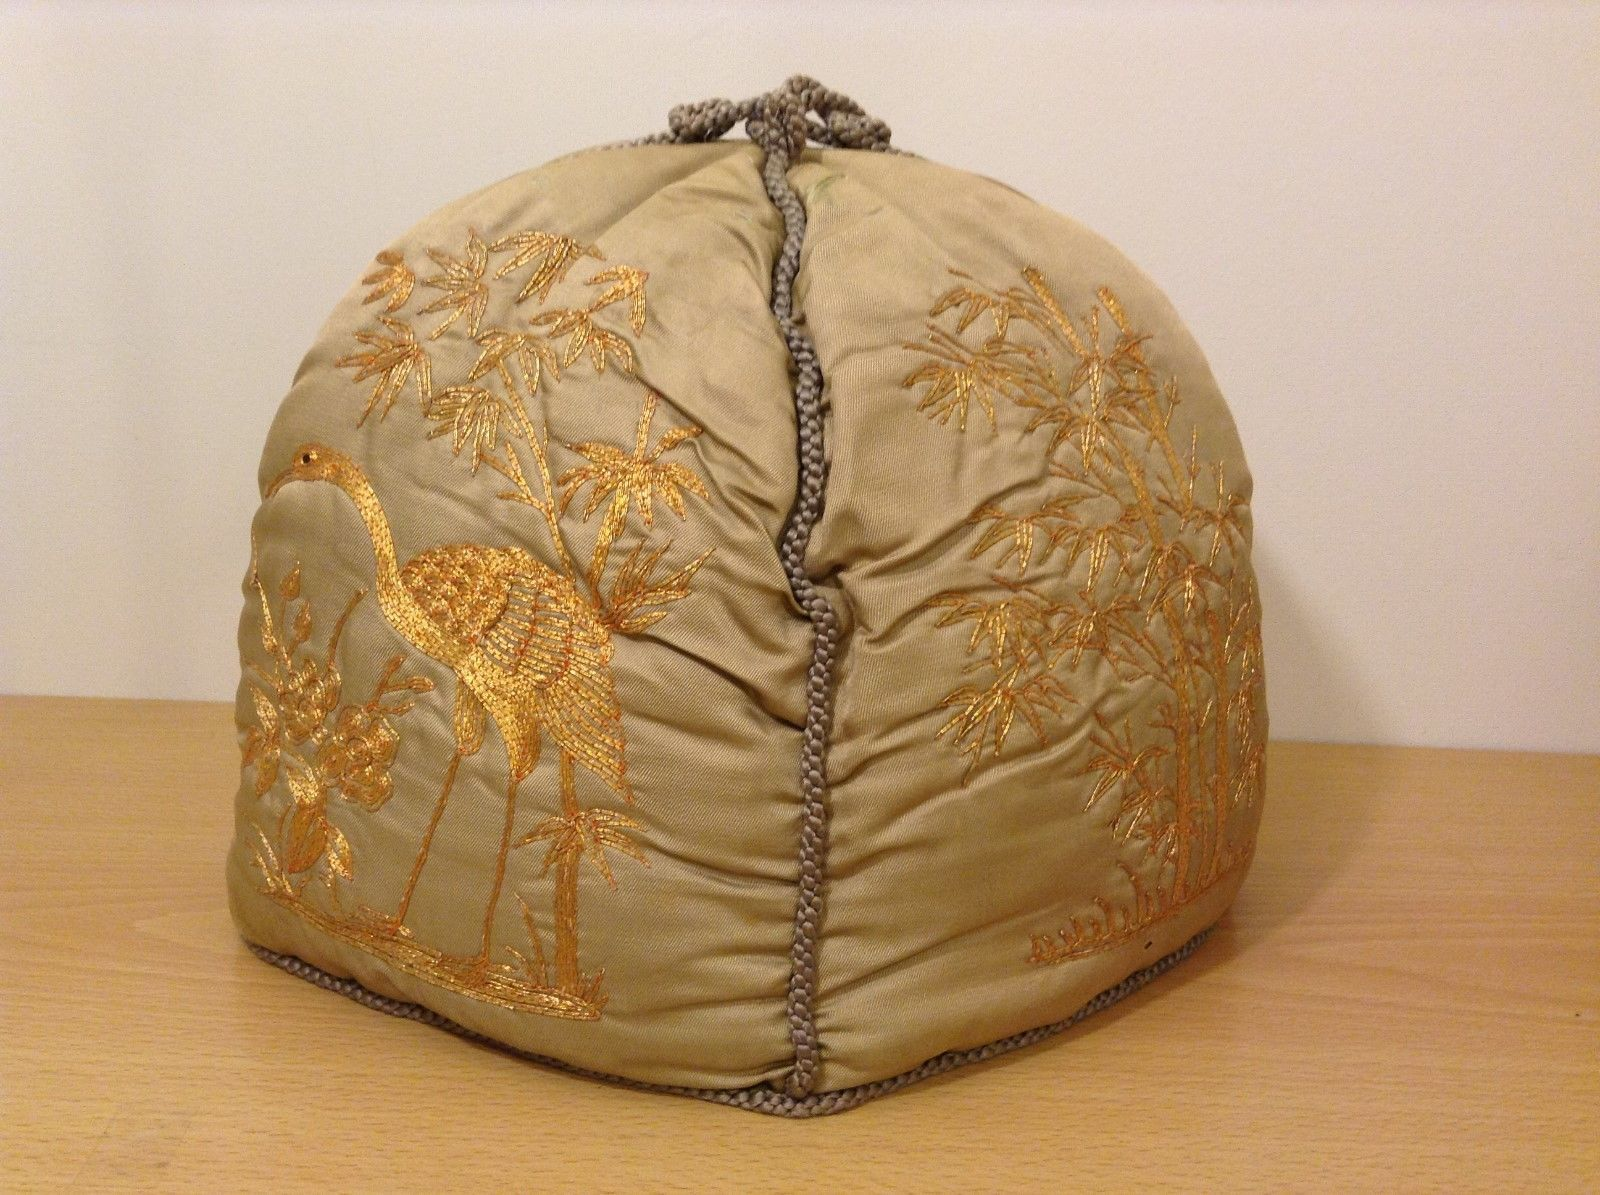 Handmade Vintage Chinese style Collectable Embroidered Tan Teapot Cover